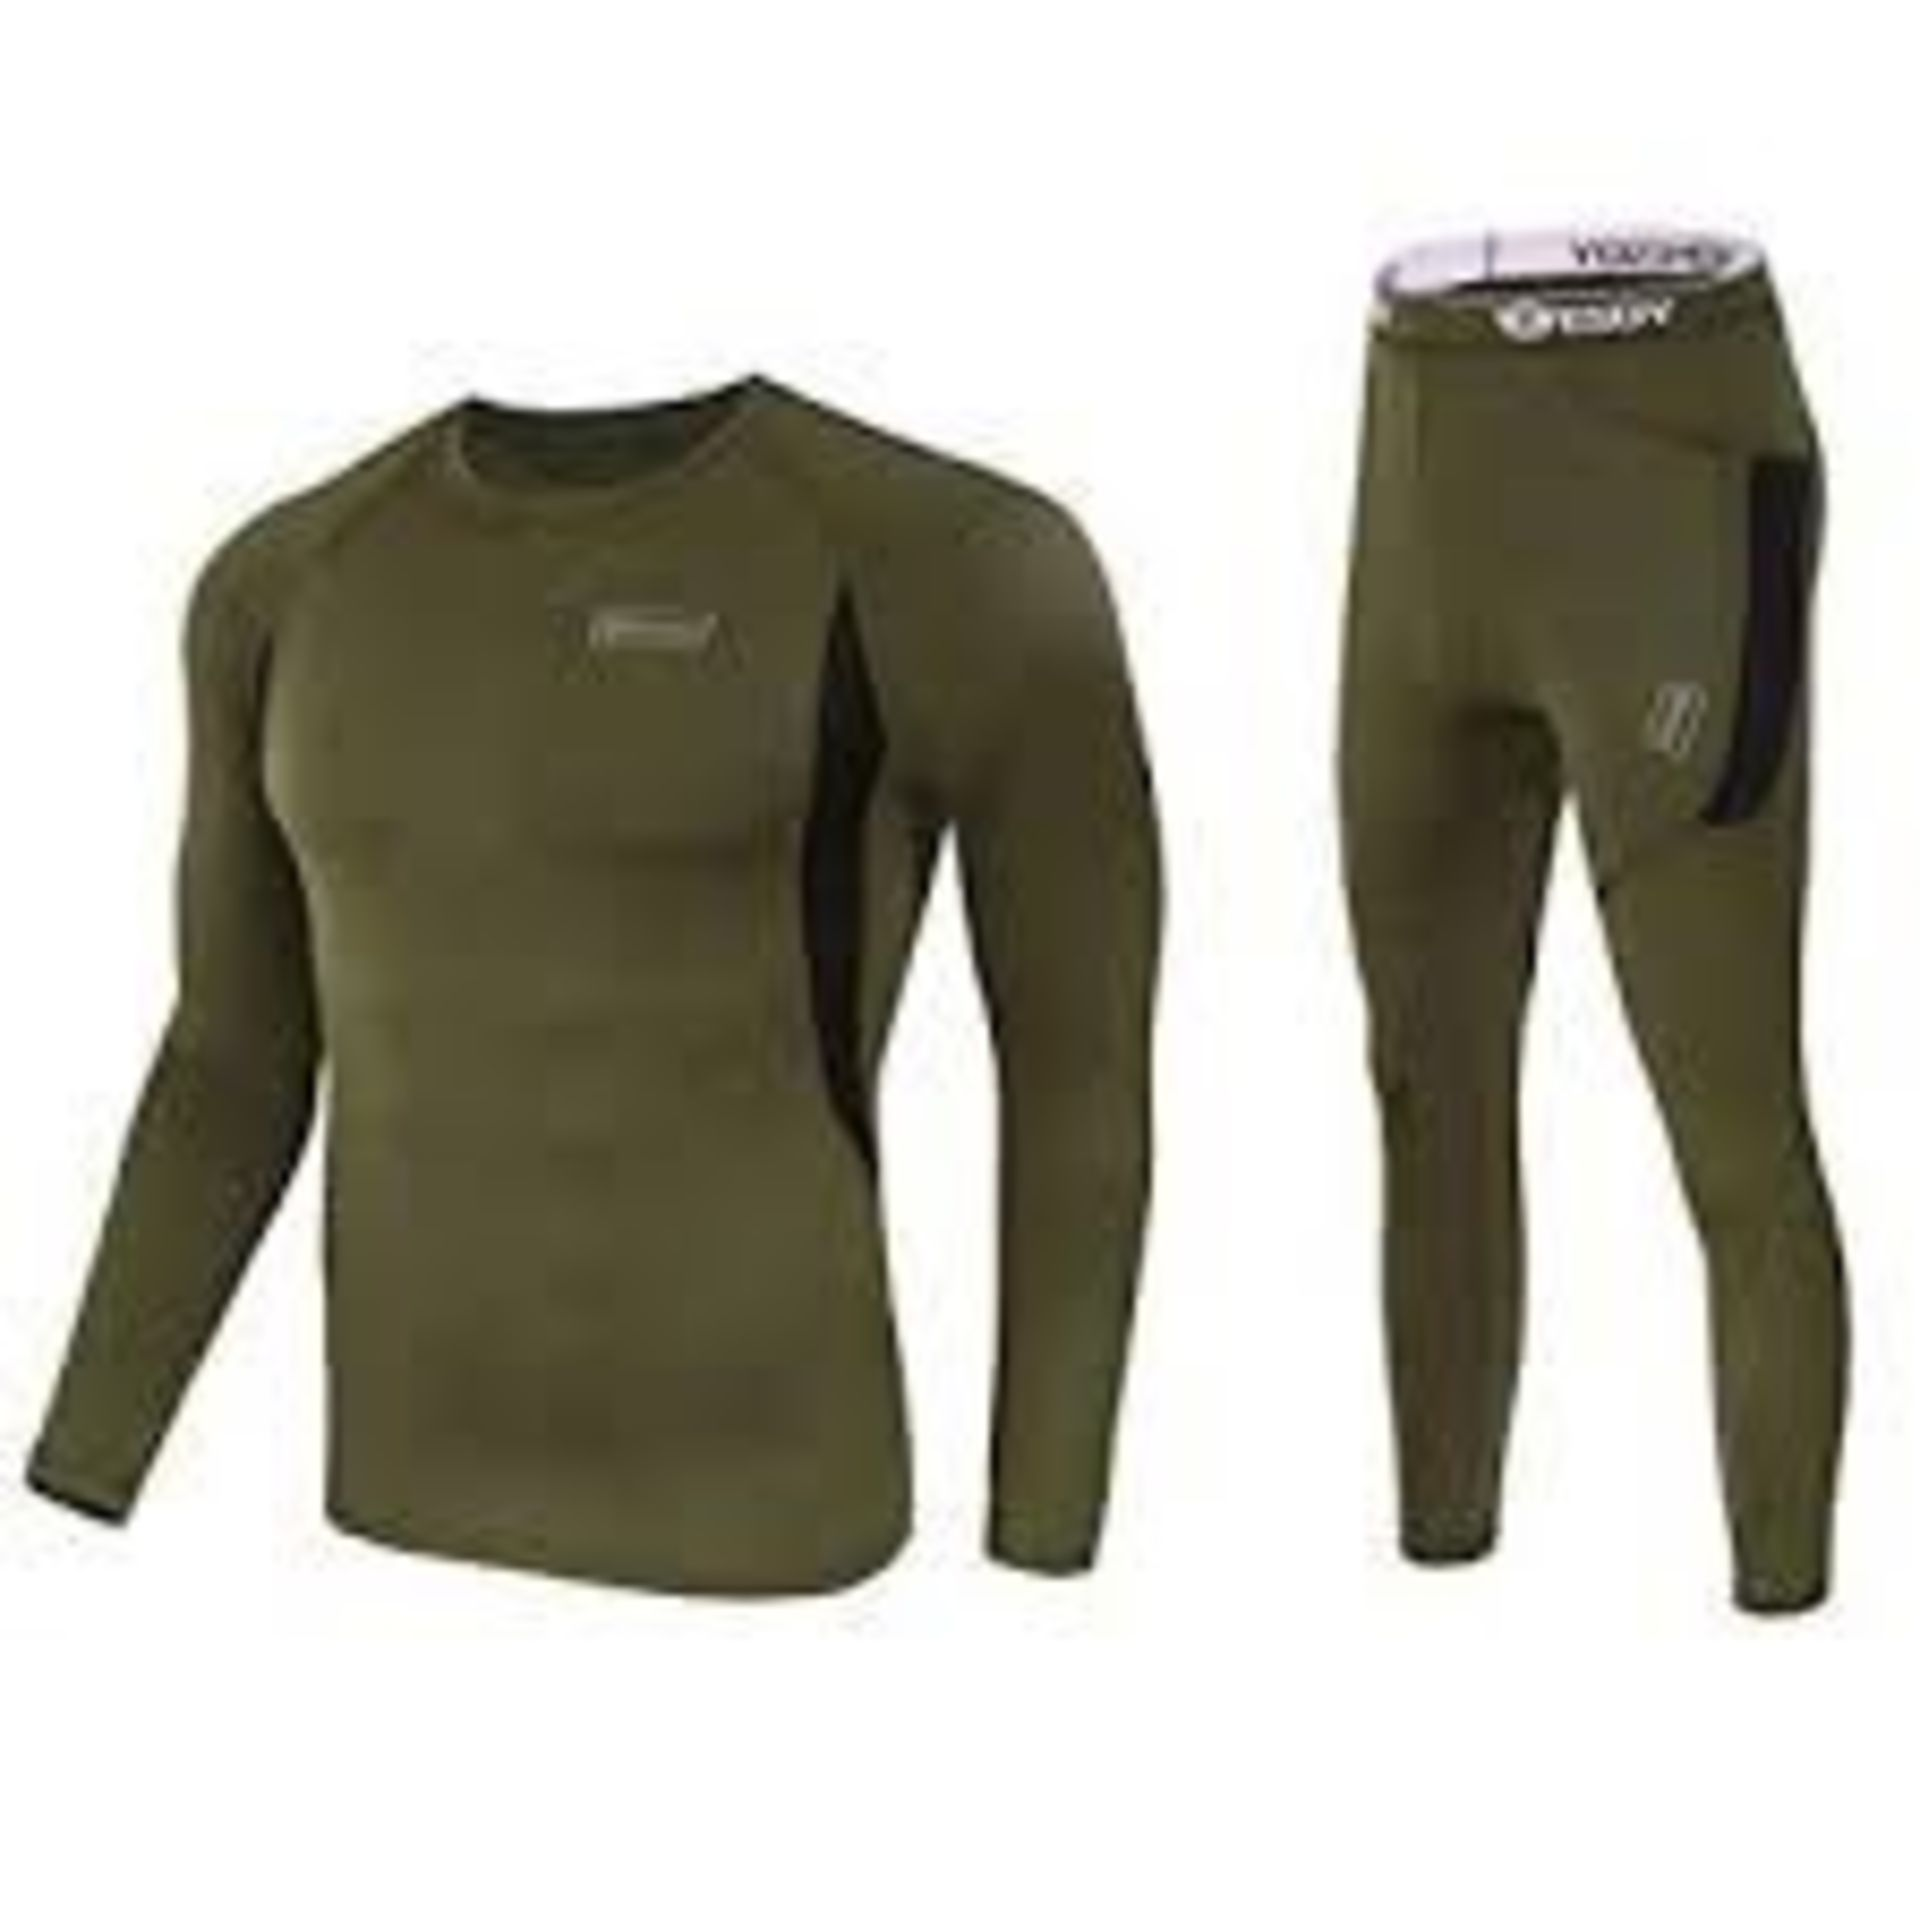 Lot 907 - Brand New ESDY Black and Khaki Thermal Gents Under Garments